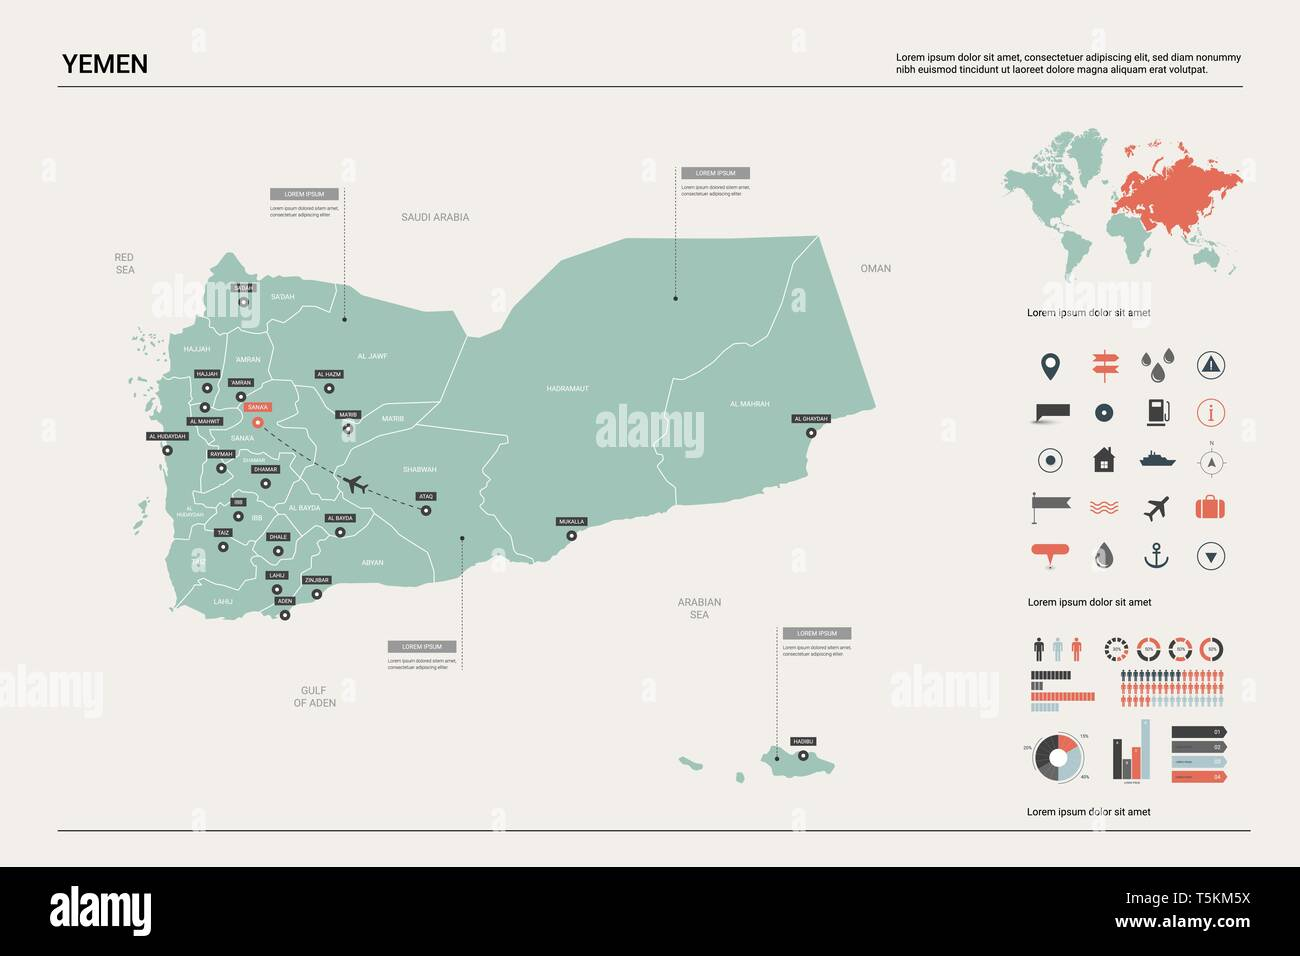 Vector map of Yemen. High detailed country map with division, cities on greenland country map, soviet union country map, cyprus country map, kuala lumpur country map, vatican country map, burkina faso country map, u.s. country map, taliban country map, kyrgyzstan country map, republic of georgia country map, botswana country map, uzbekistan country map, mount everest country map, worldwide country map, british virgin islands country map, mesopotamia country map, dominica country map, persian gulf country map, turkmenistan country map, babylonia country map,